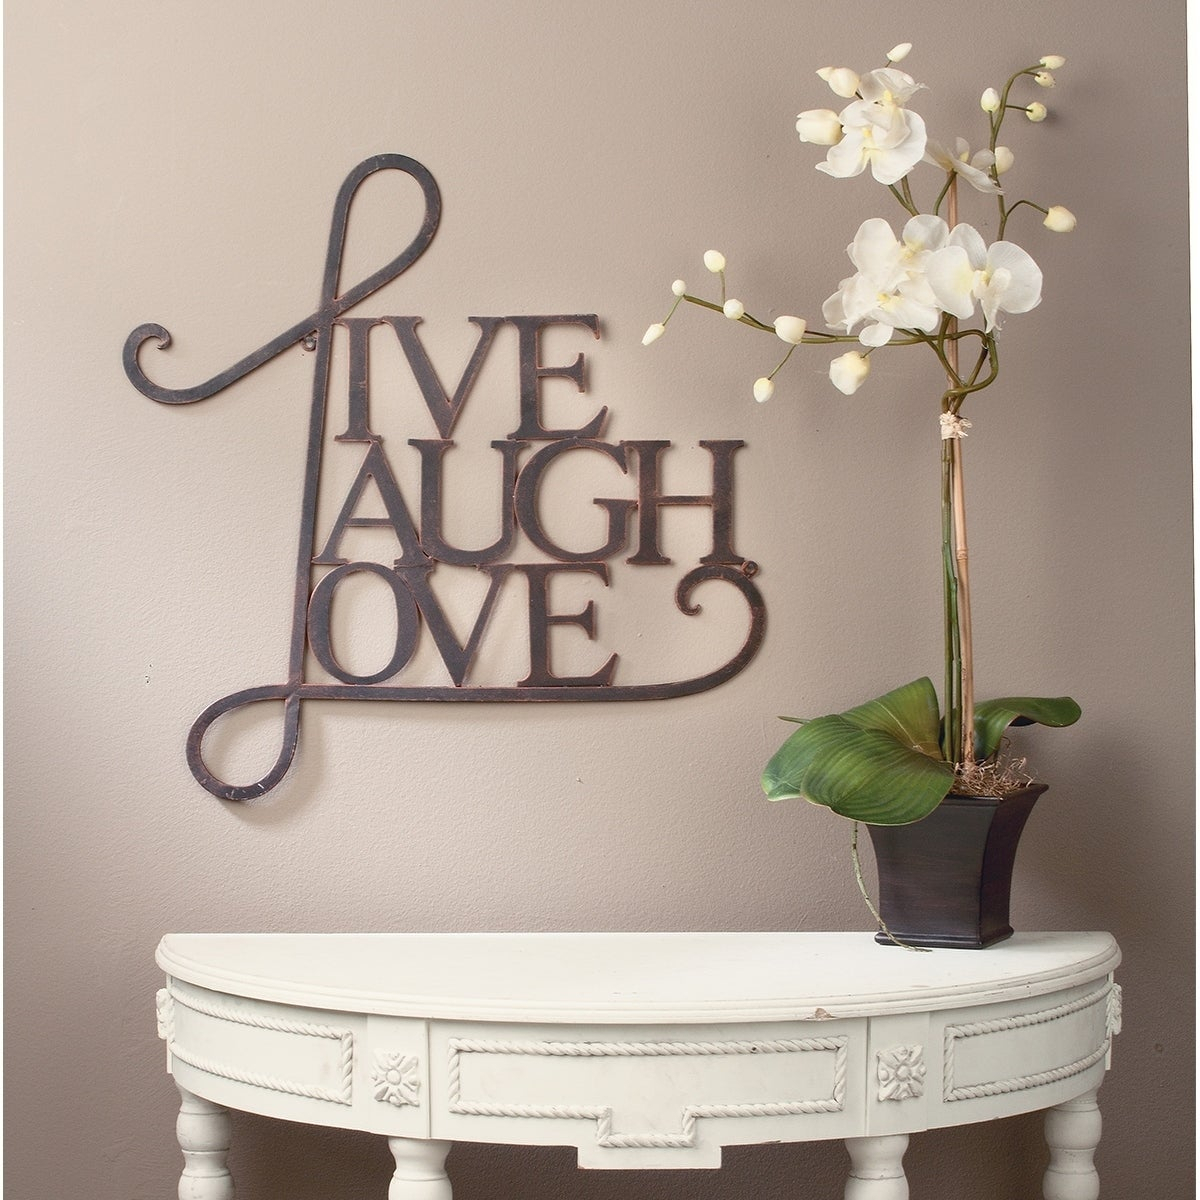 Best And Newest Live, Laugh, Love Wall Decor  Antique Copper / White Finish For Live, Laugh, Love Antique Copper Wall Decor (Gallery 2 of 20)